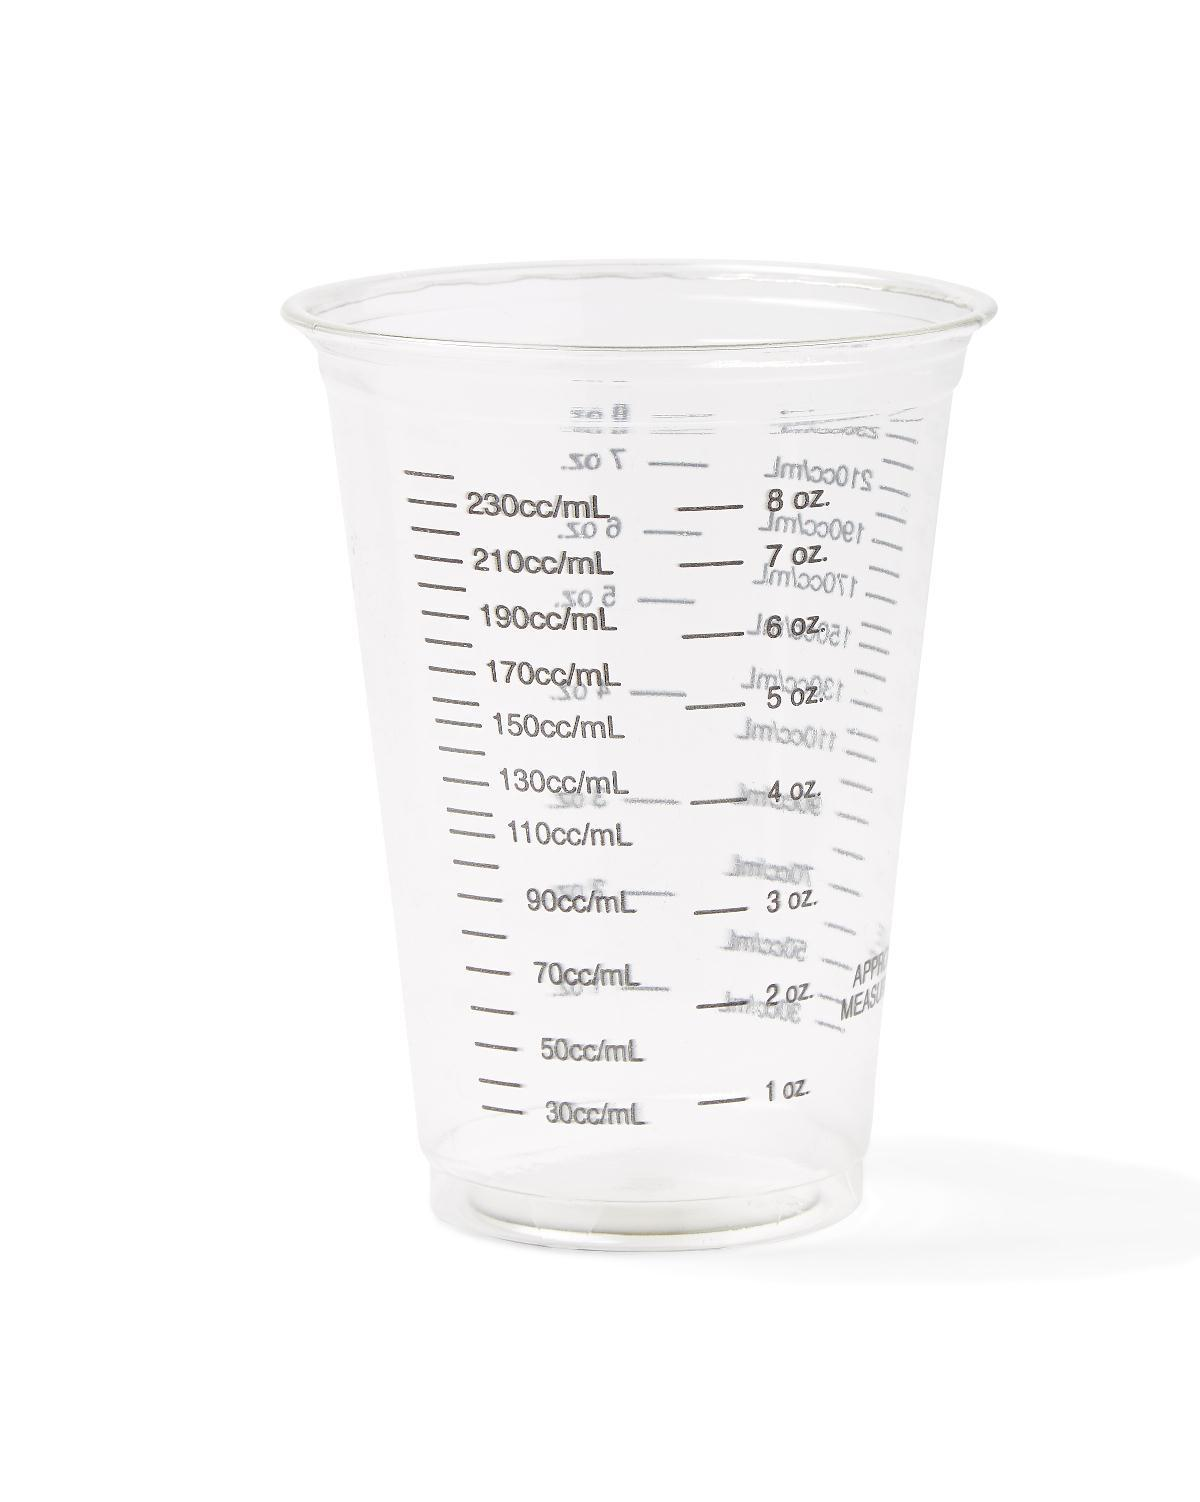 Cup Plastic Graduated 10 Ounce - Non03010bar - Food Service Drinking Cups Glasses NON03010BAR